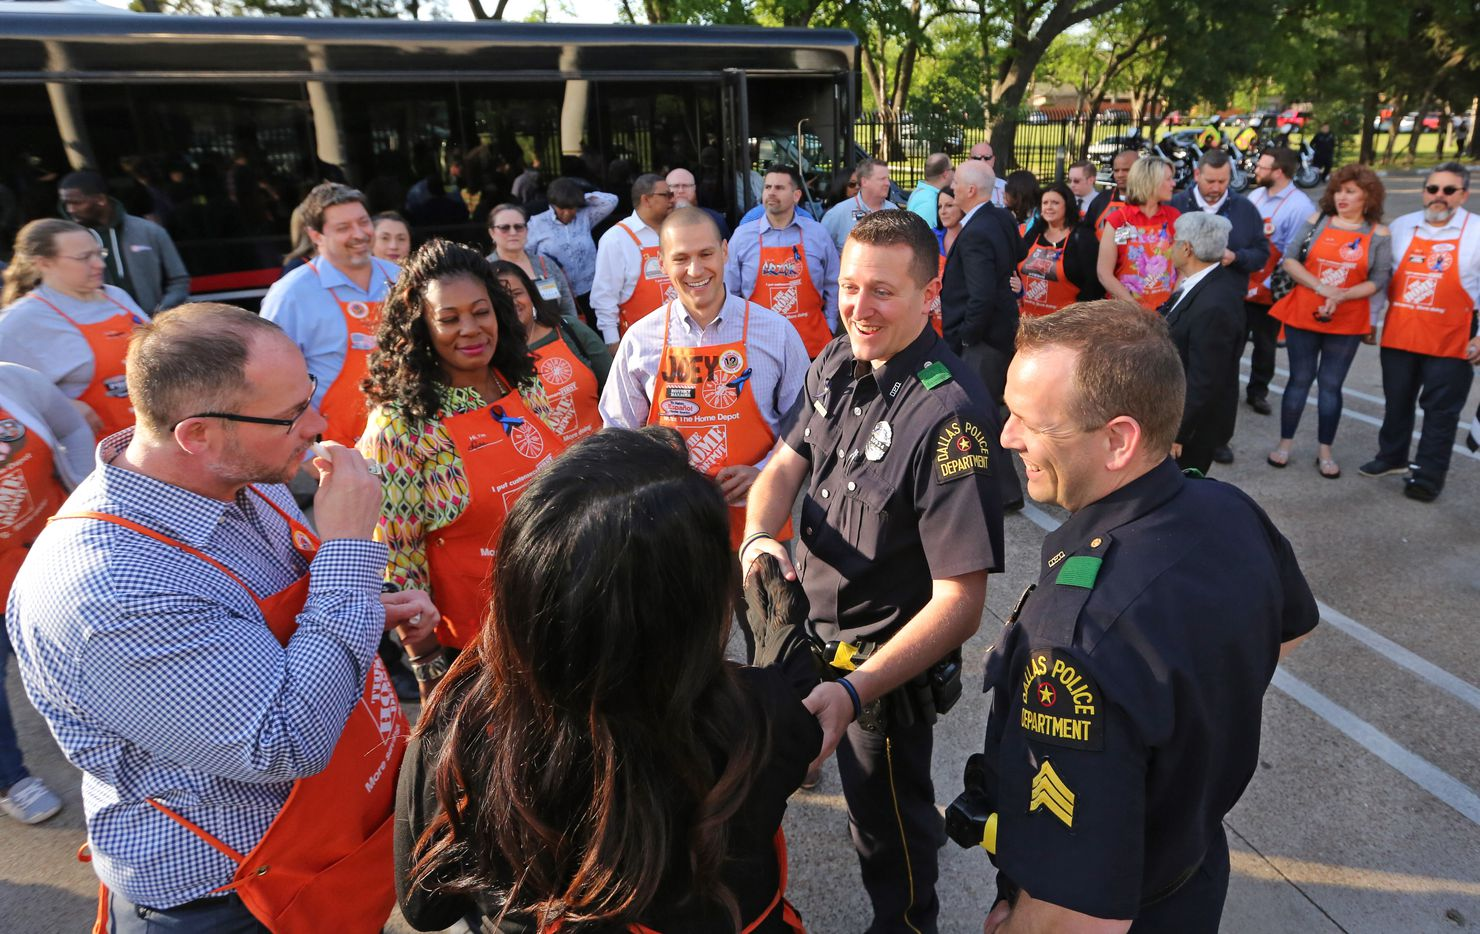 Neighborhood Police Officer Kevin Kelley greats a busload of Home Depot employees at a candlelight vigil to support Dallas Police Officer Crystal Almeida, and to honor the memory of Officer Rogelio Santander, Jr., held at the Dallas Police Northeast Division substation on Thursday, April 26, 2018.